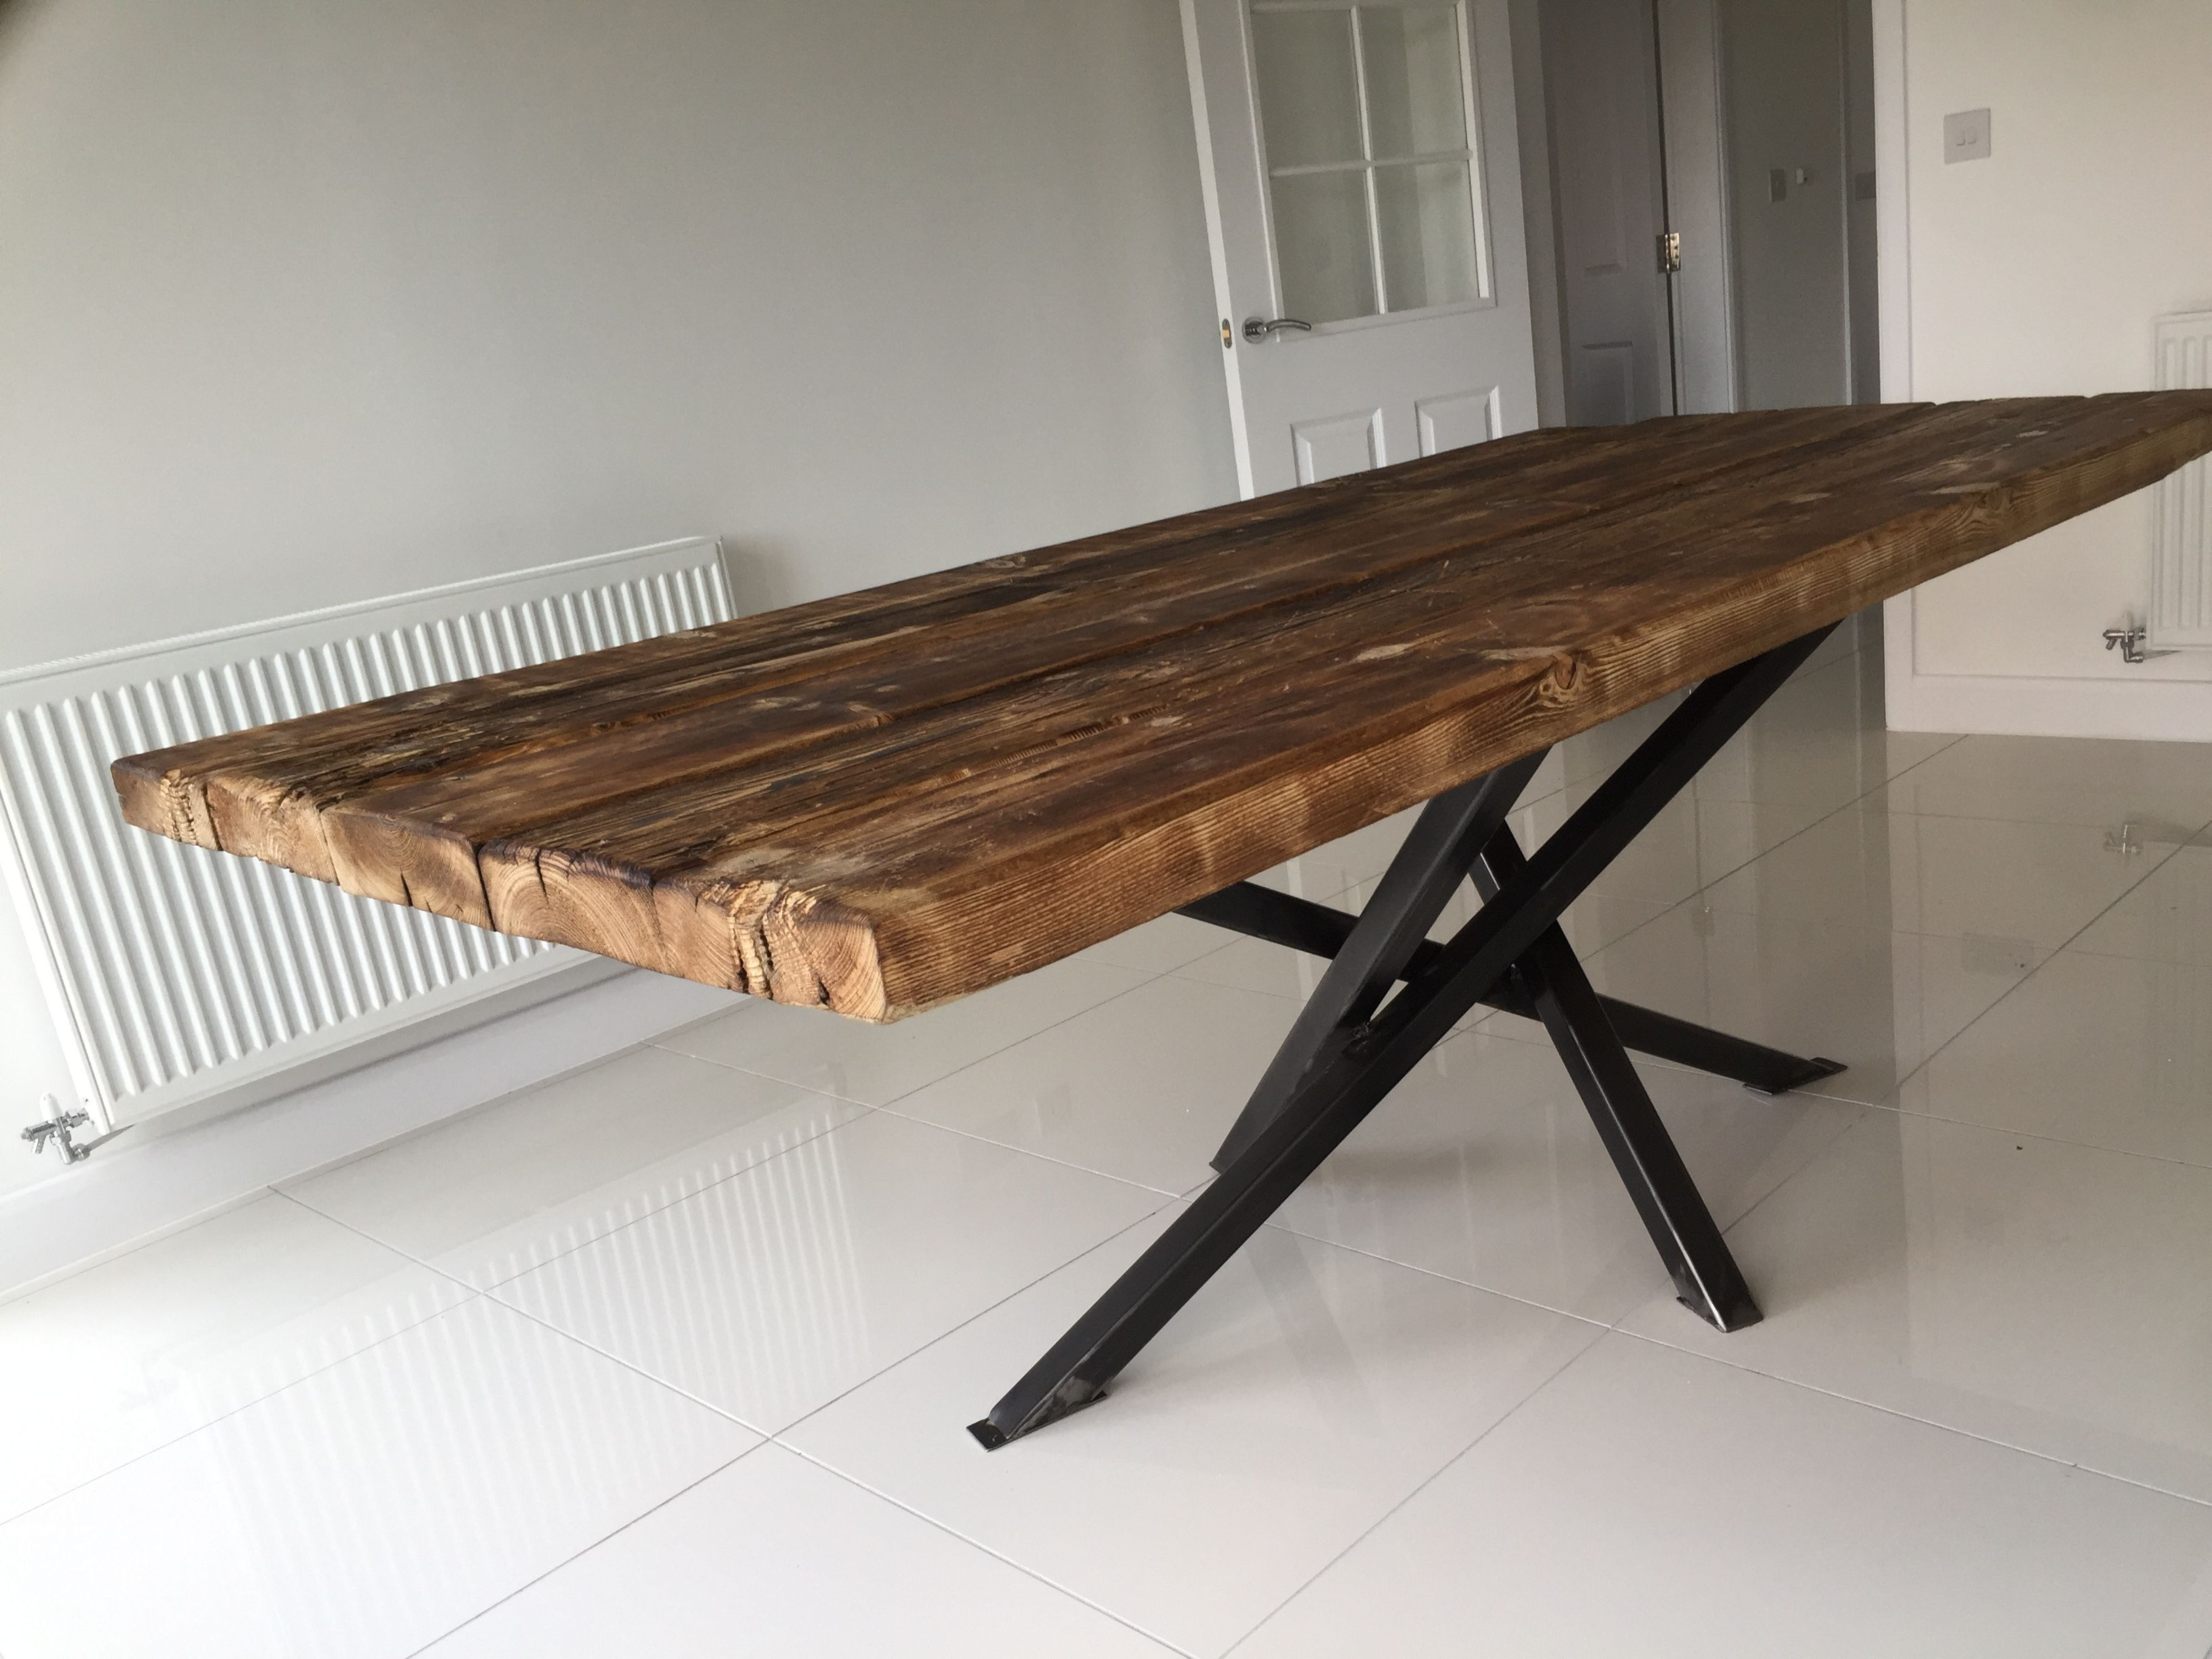 The old modern by Rusty Wood.. Reclaimed timber top on modern steel ...